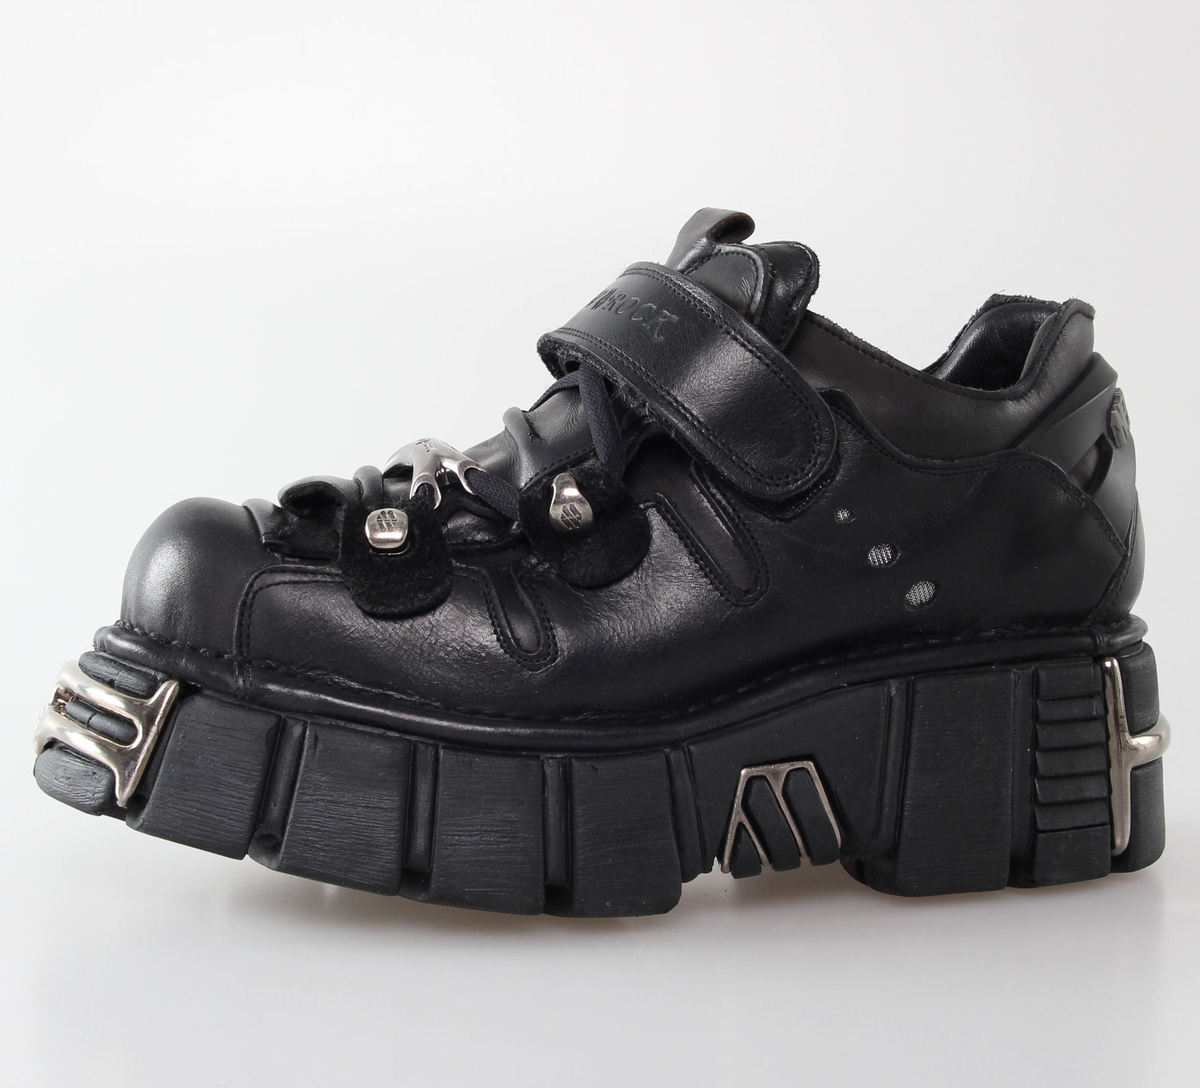 boty NEW ROCK - Bolt Shoes (131-S1) Black - N-8-51-700-00